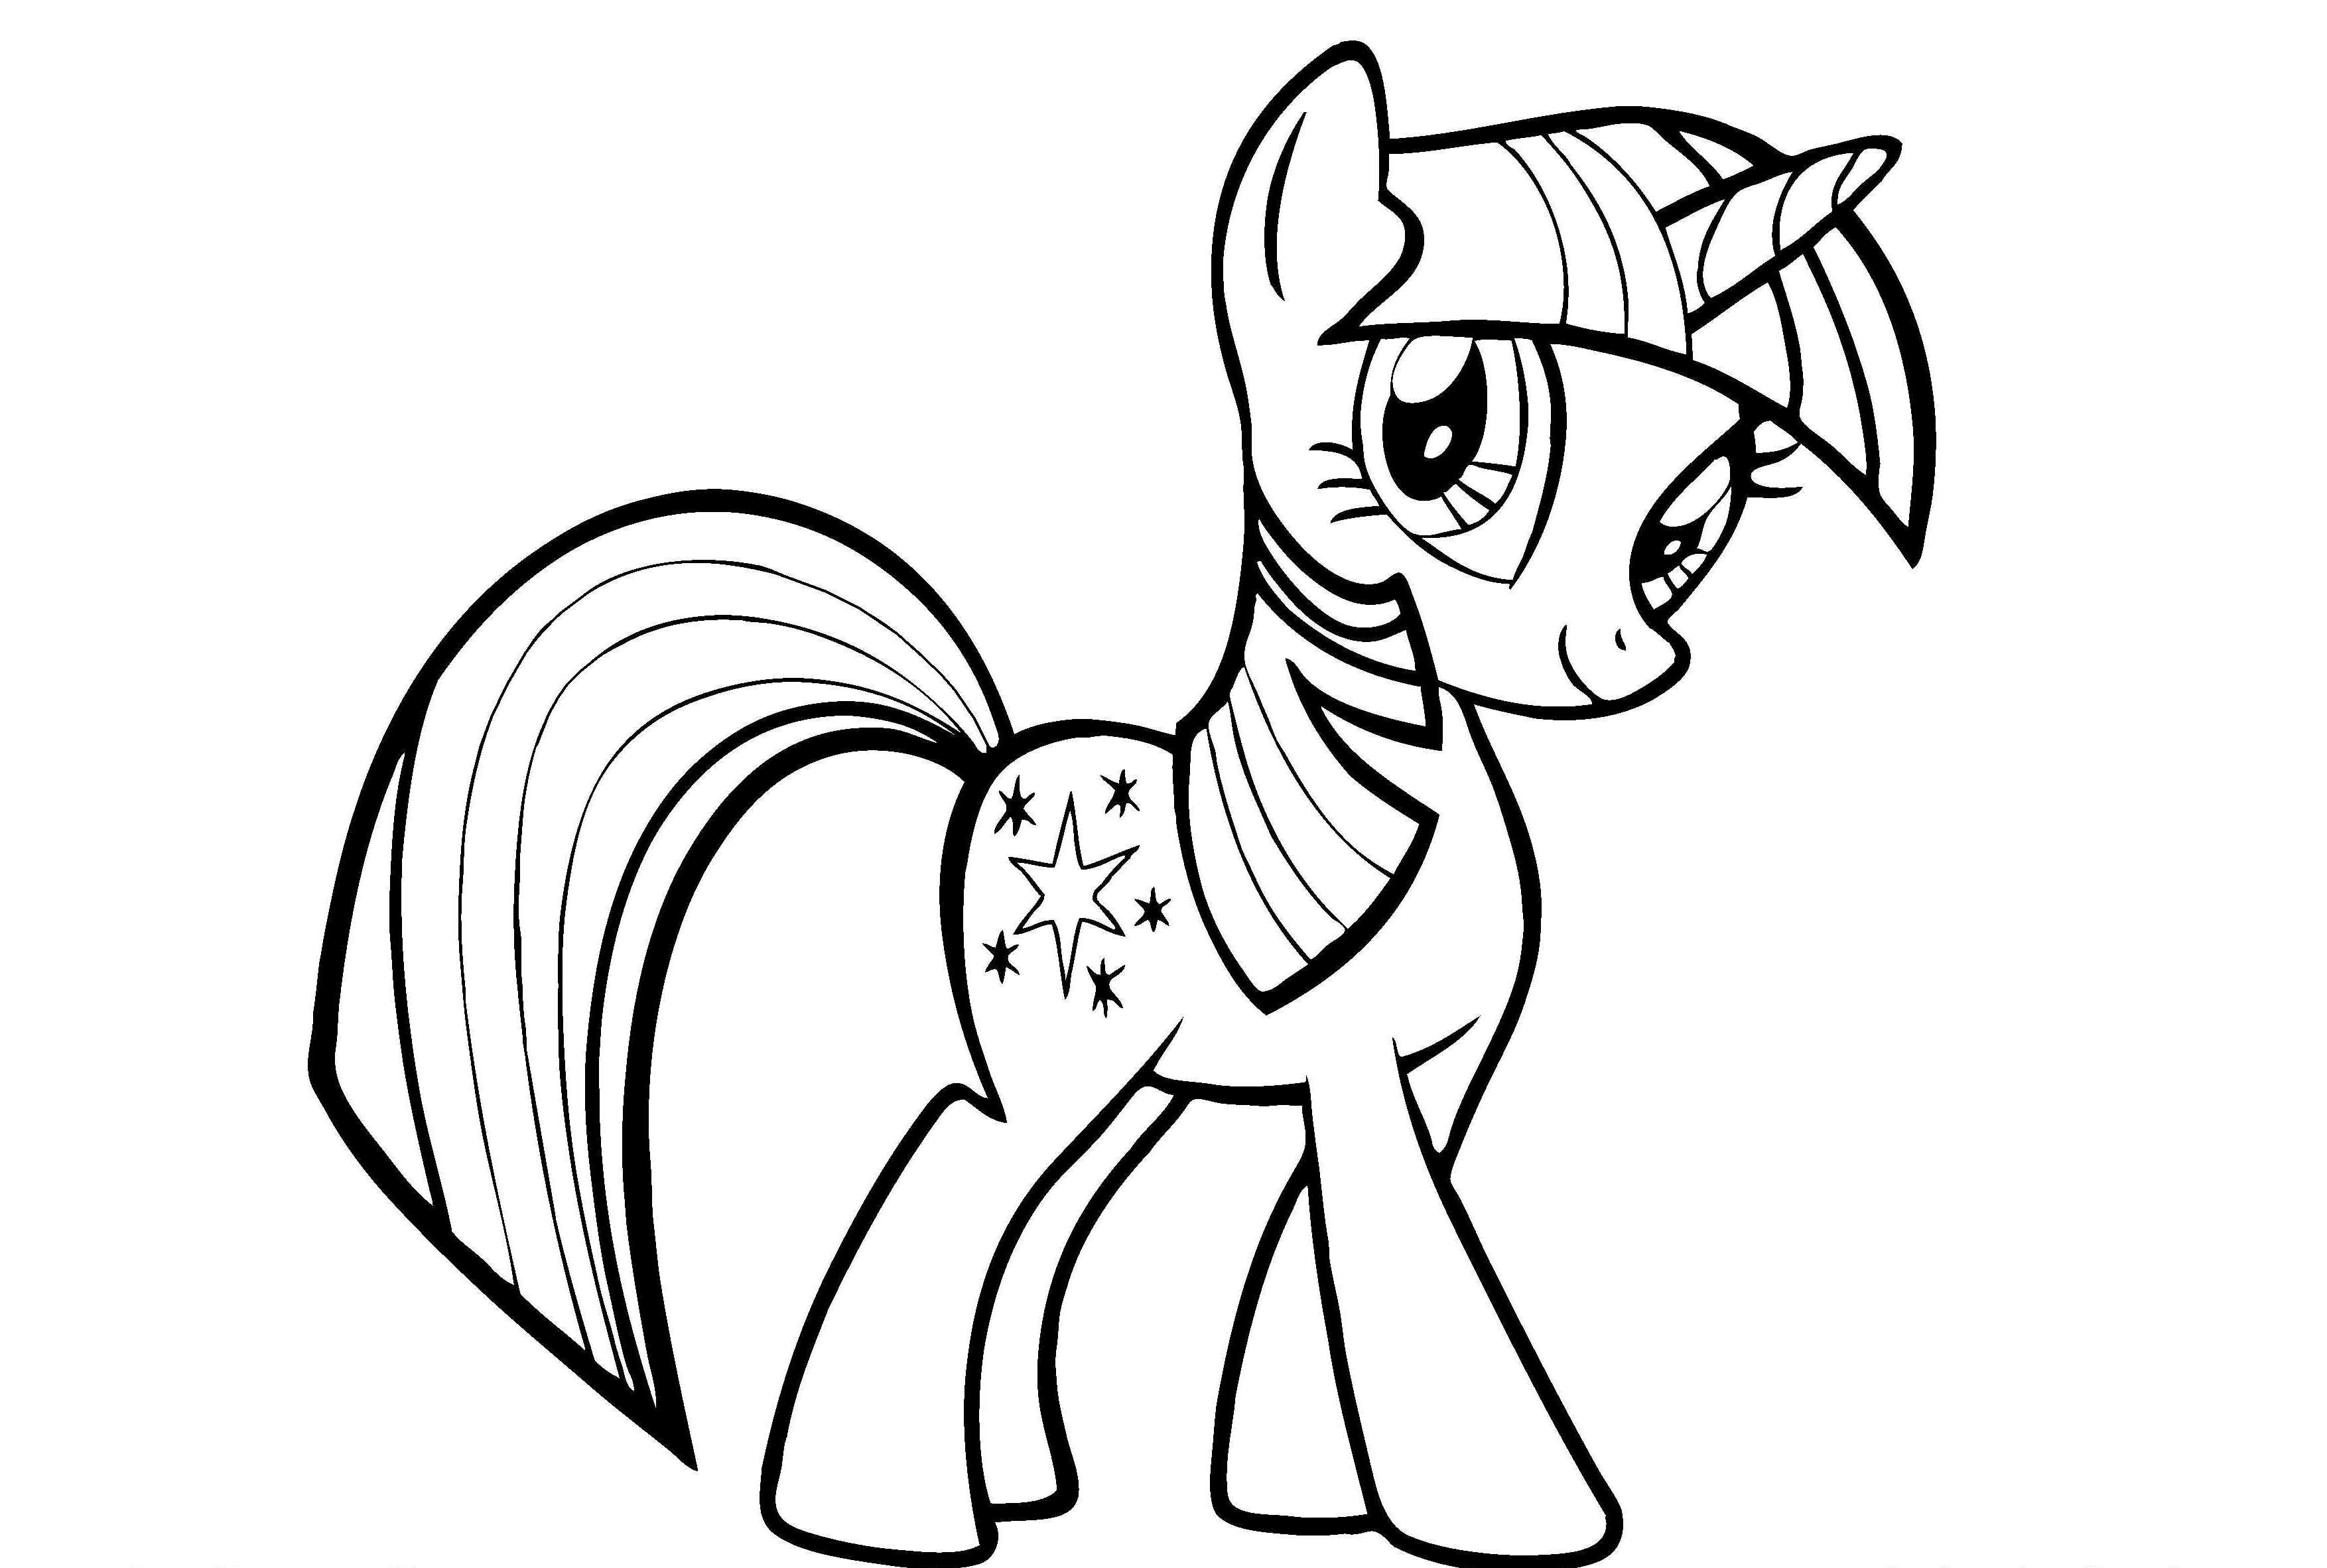 My Little Pony Coloring Pages Twilight Sparkle Coloring Pages Jpg 3508 2364 My Little Pony Printable My Little Pony Coloring Horse Coloring Pages